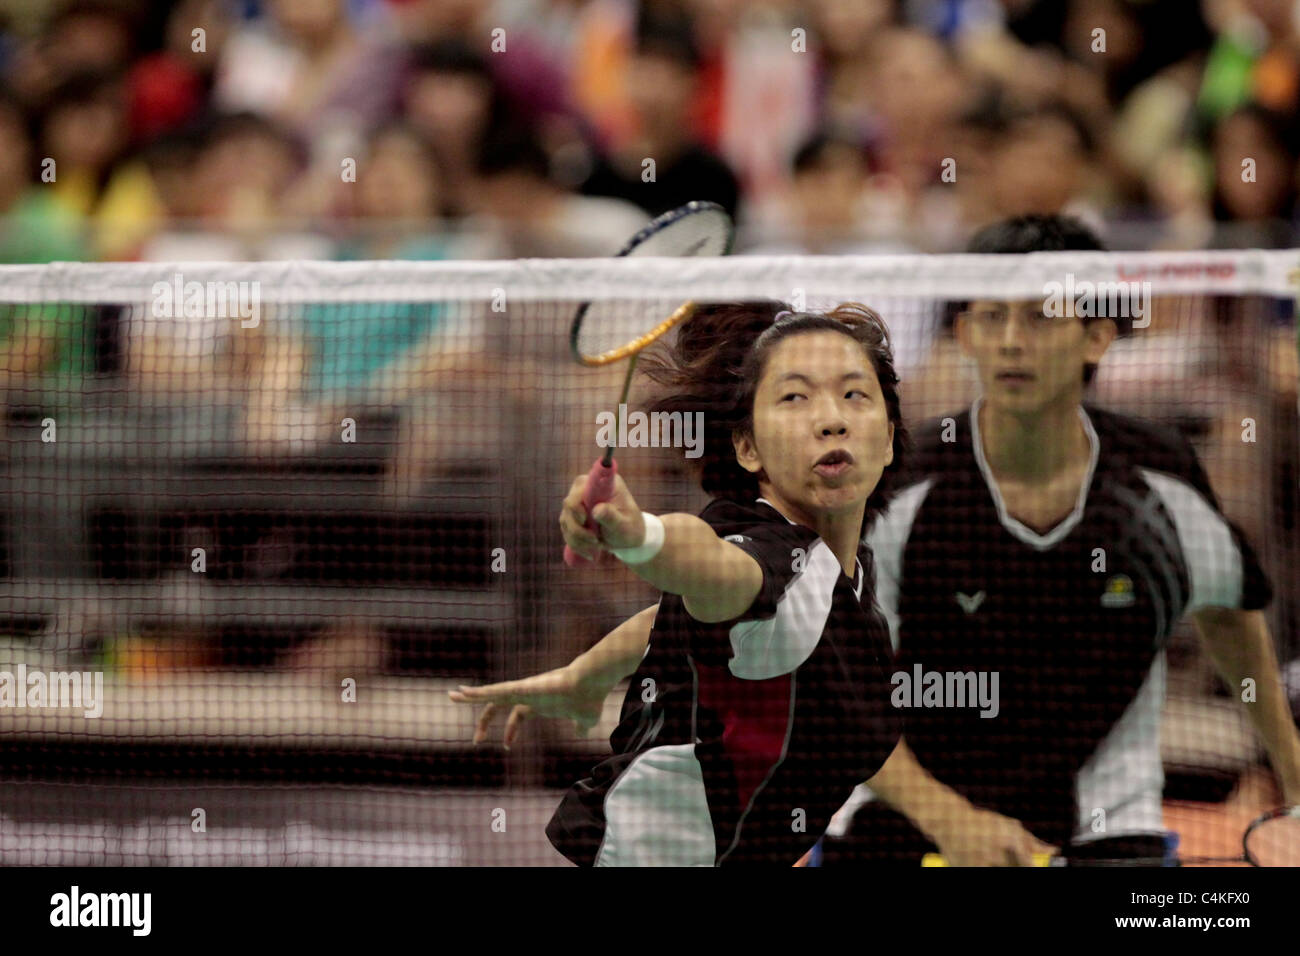 Cheng Wen Hsing and Chen Hung Ling of Chinese Taipei in action